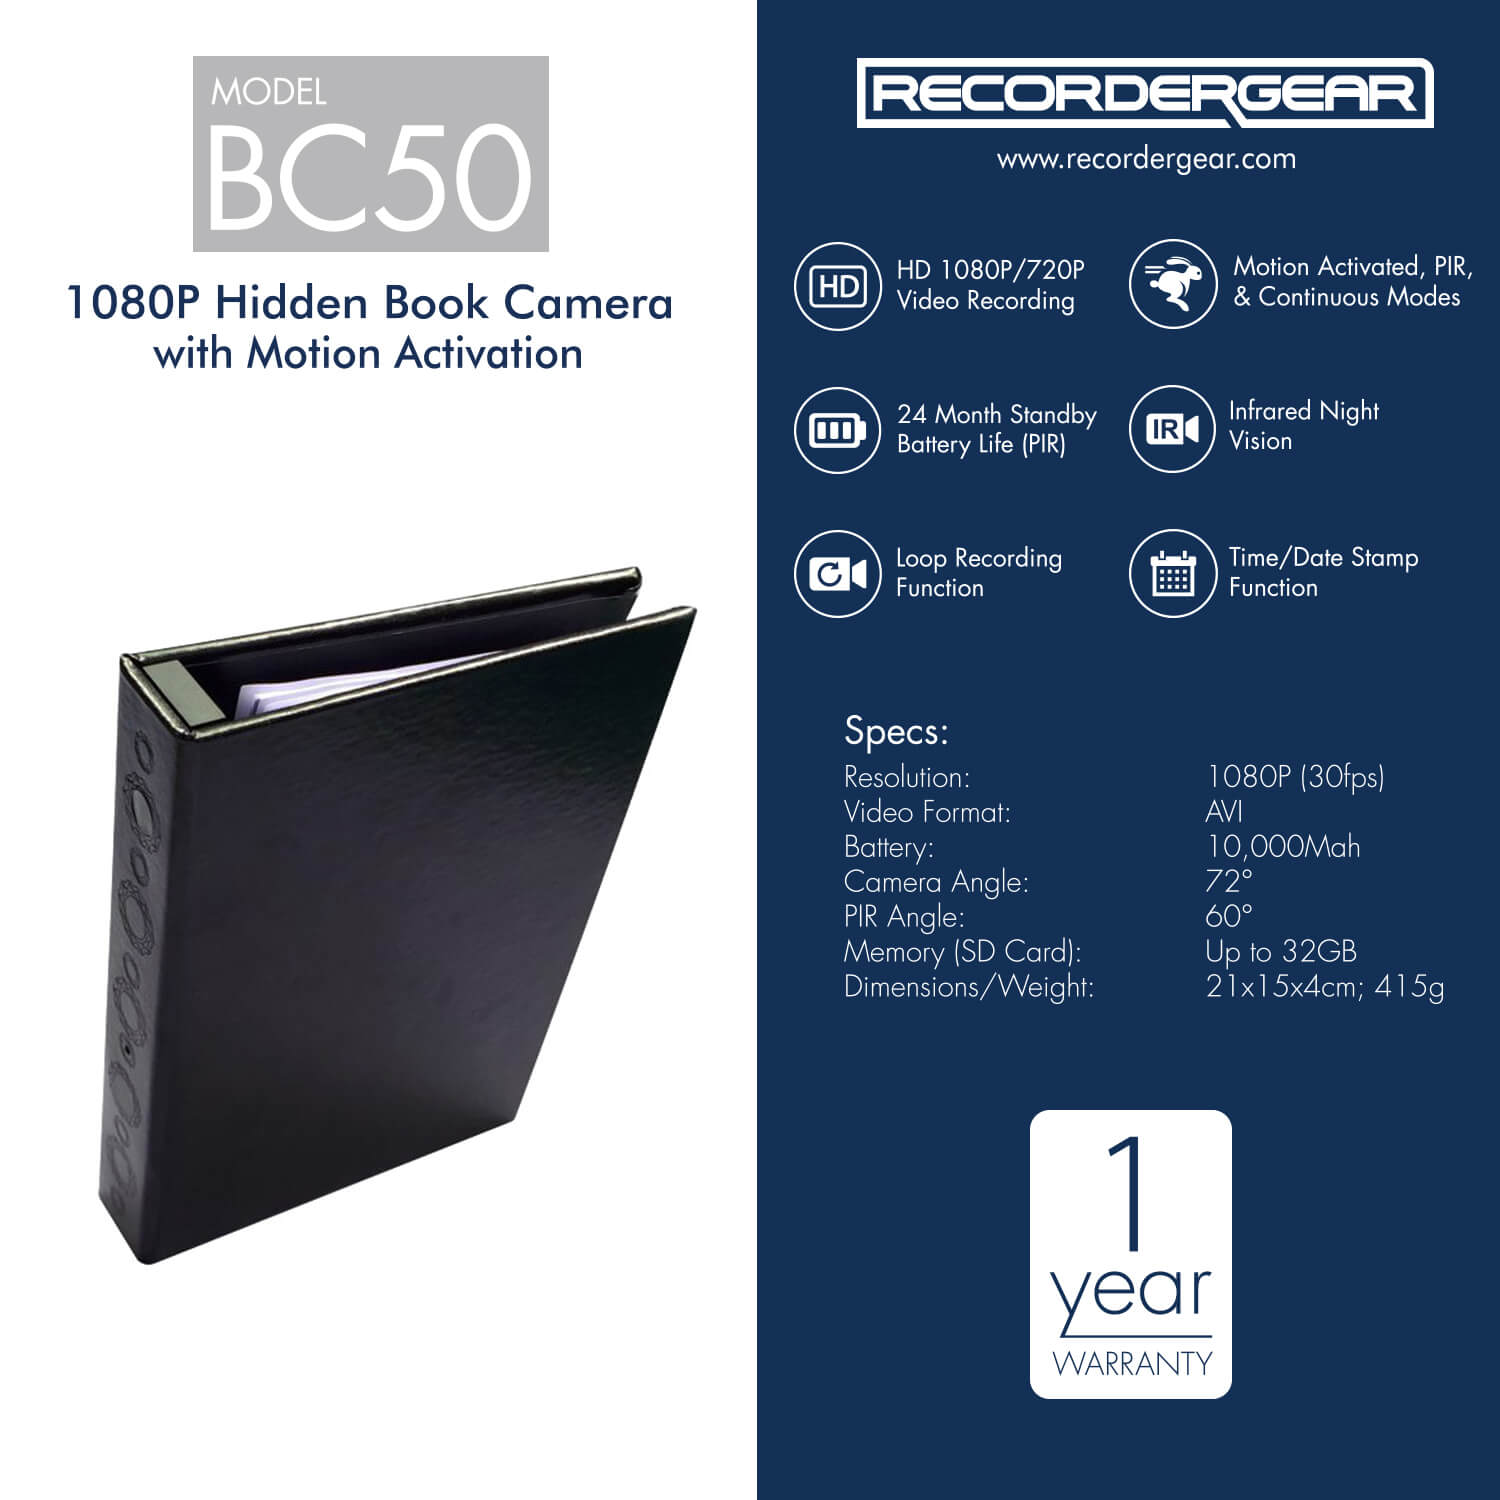 BC50 1080P Home Security Night Vision Motion Activated Hidden Spy Book Camera